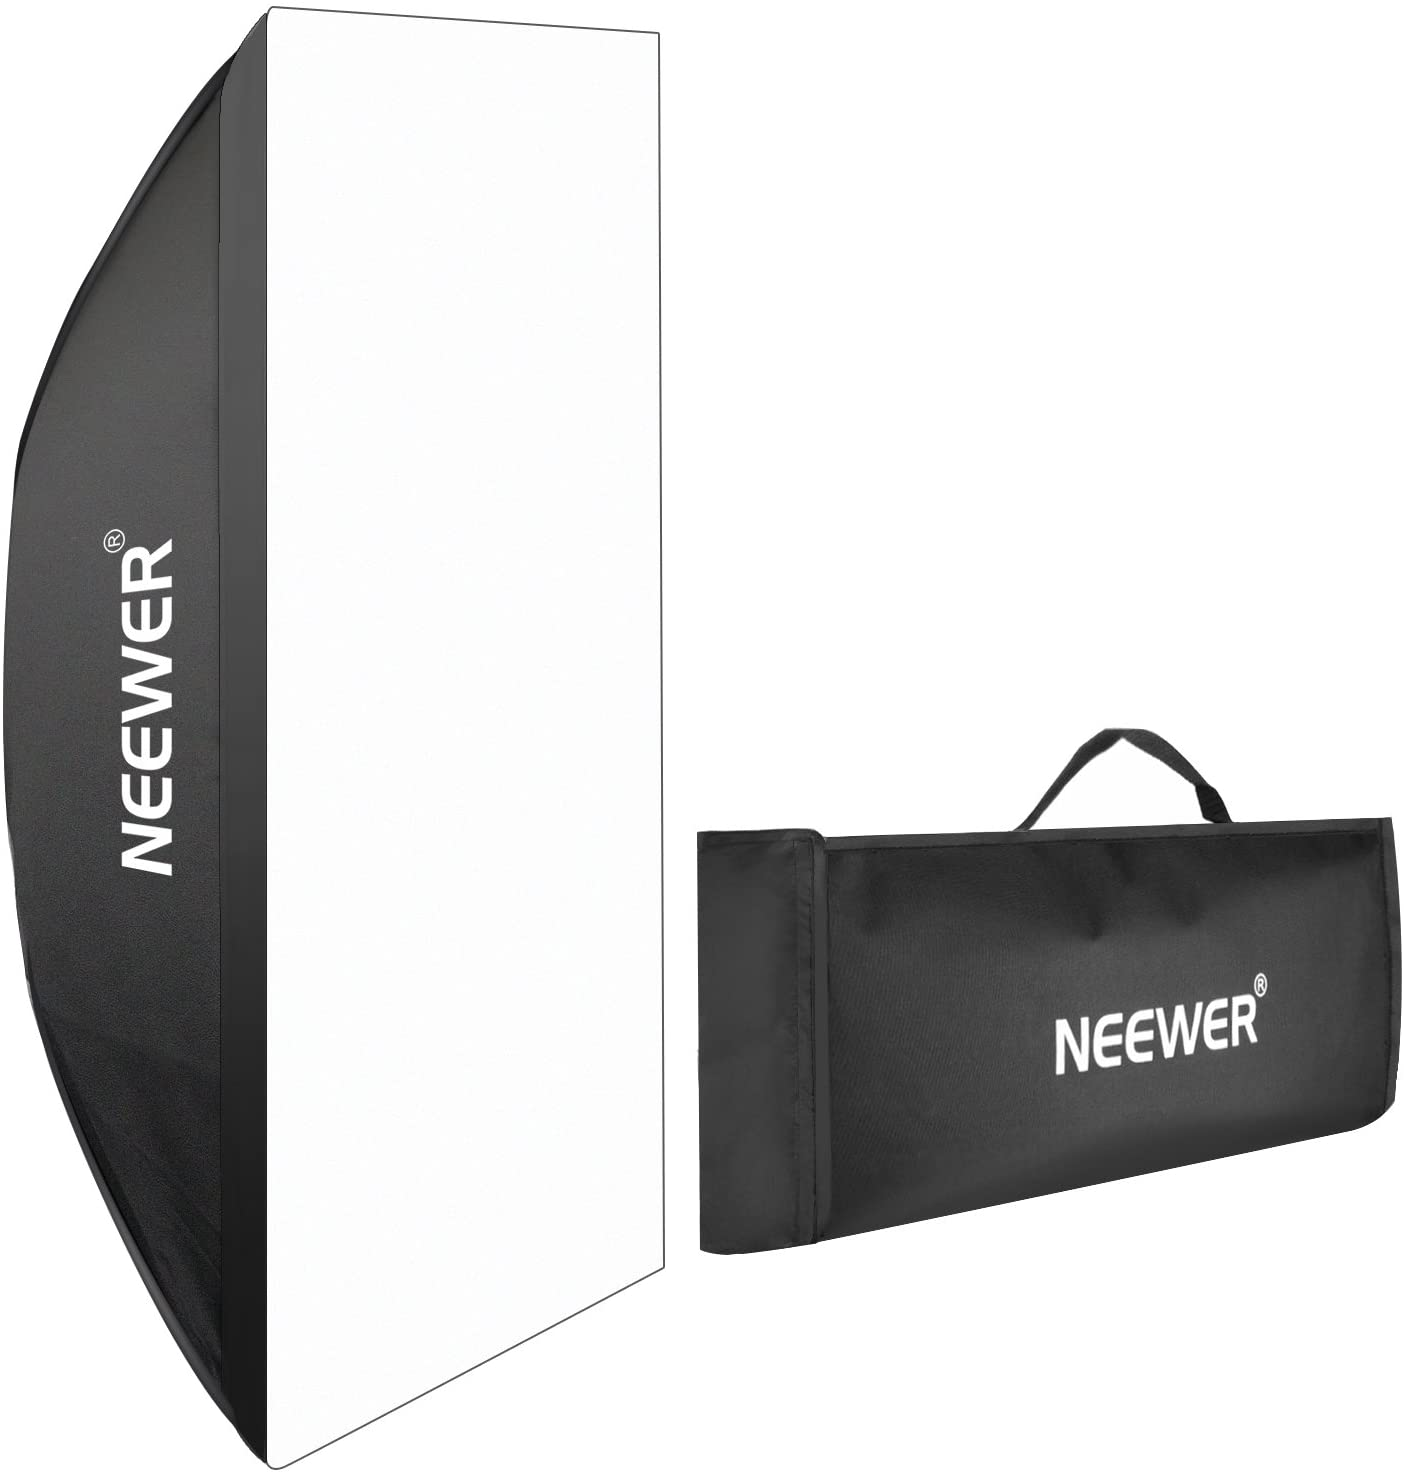 Neewer Portable Rectangular Softbox with Bowens Mount 60 X 90cm 23.6 X 35.4 for Canon Nikon 300w 400W 600w 800W 1000w Studio Flash